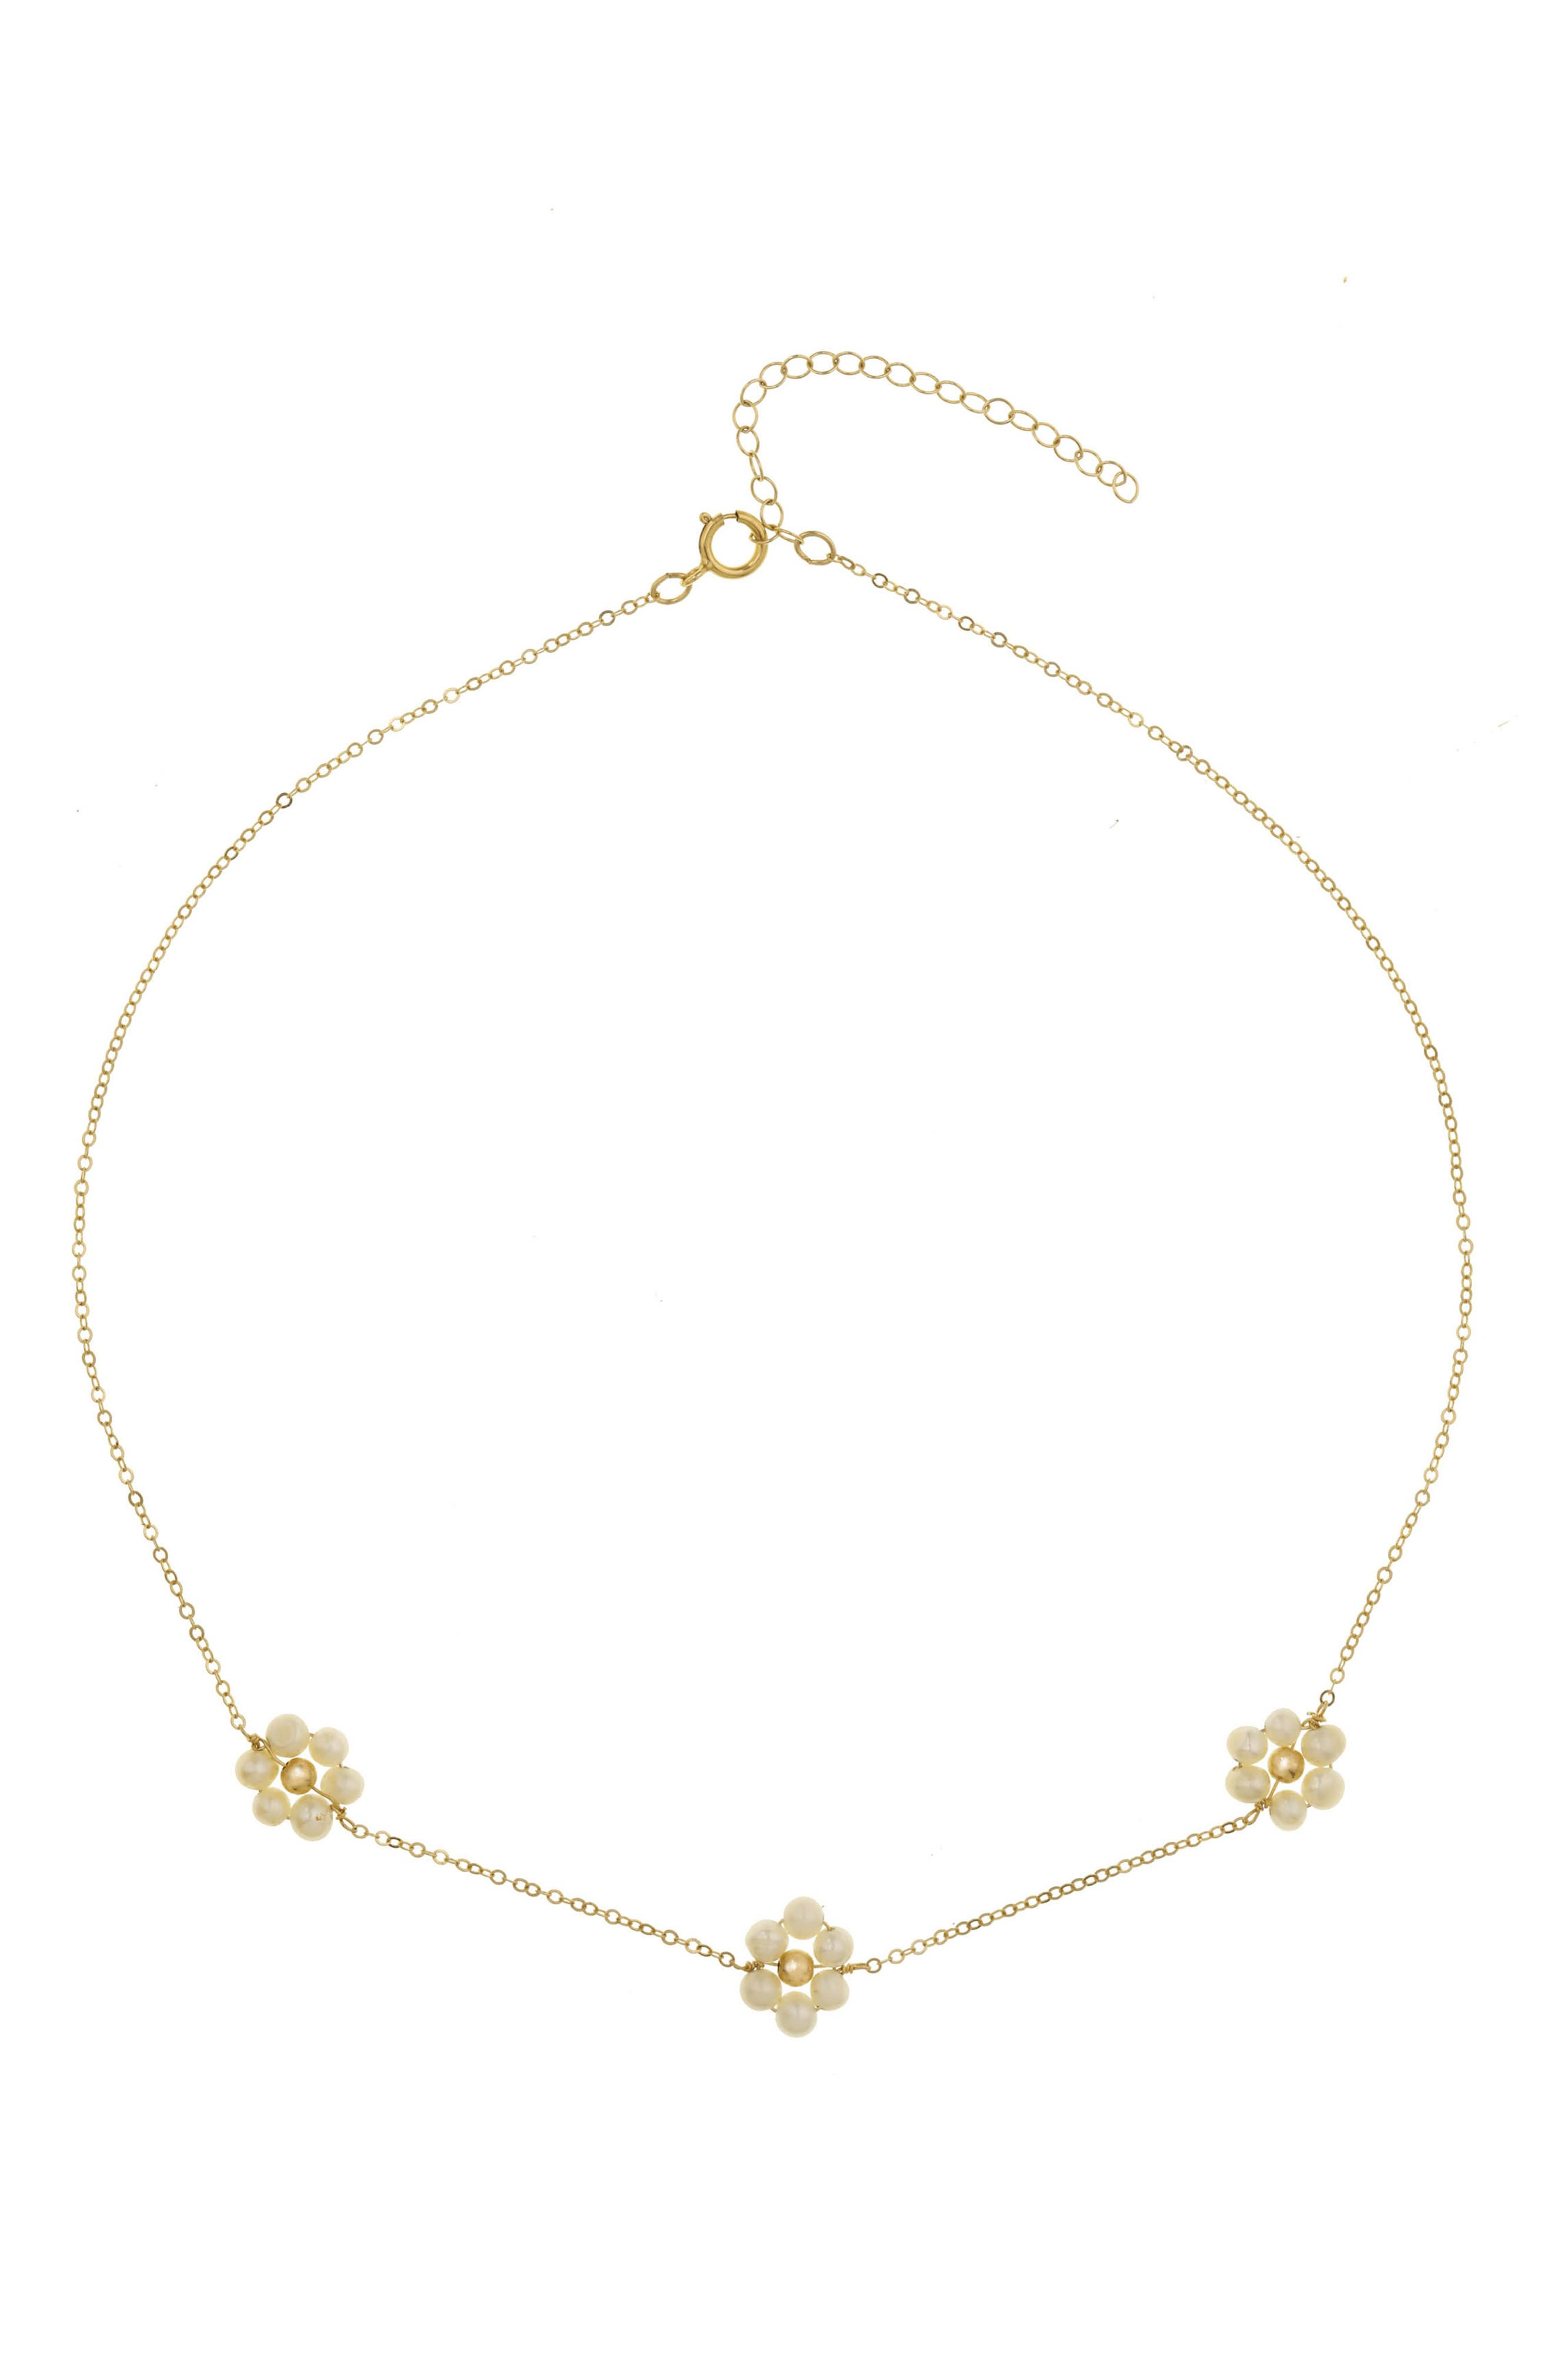 Fiores Freshwater Pearl Choker Necklace